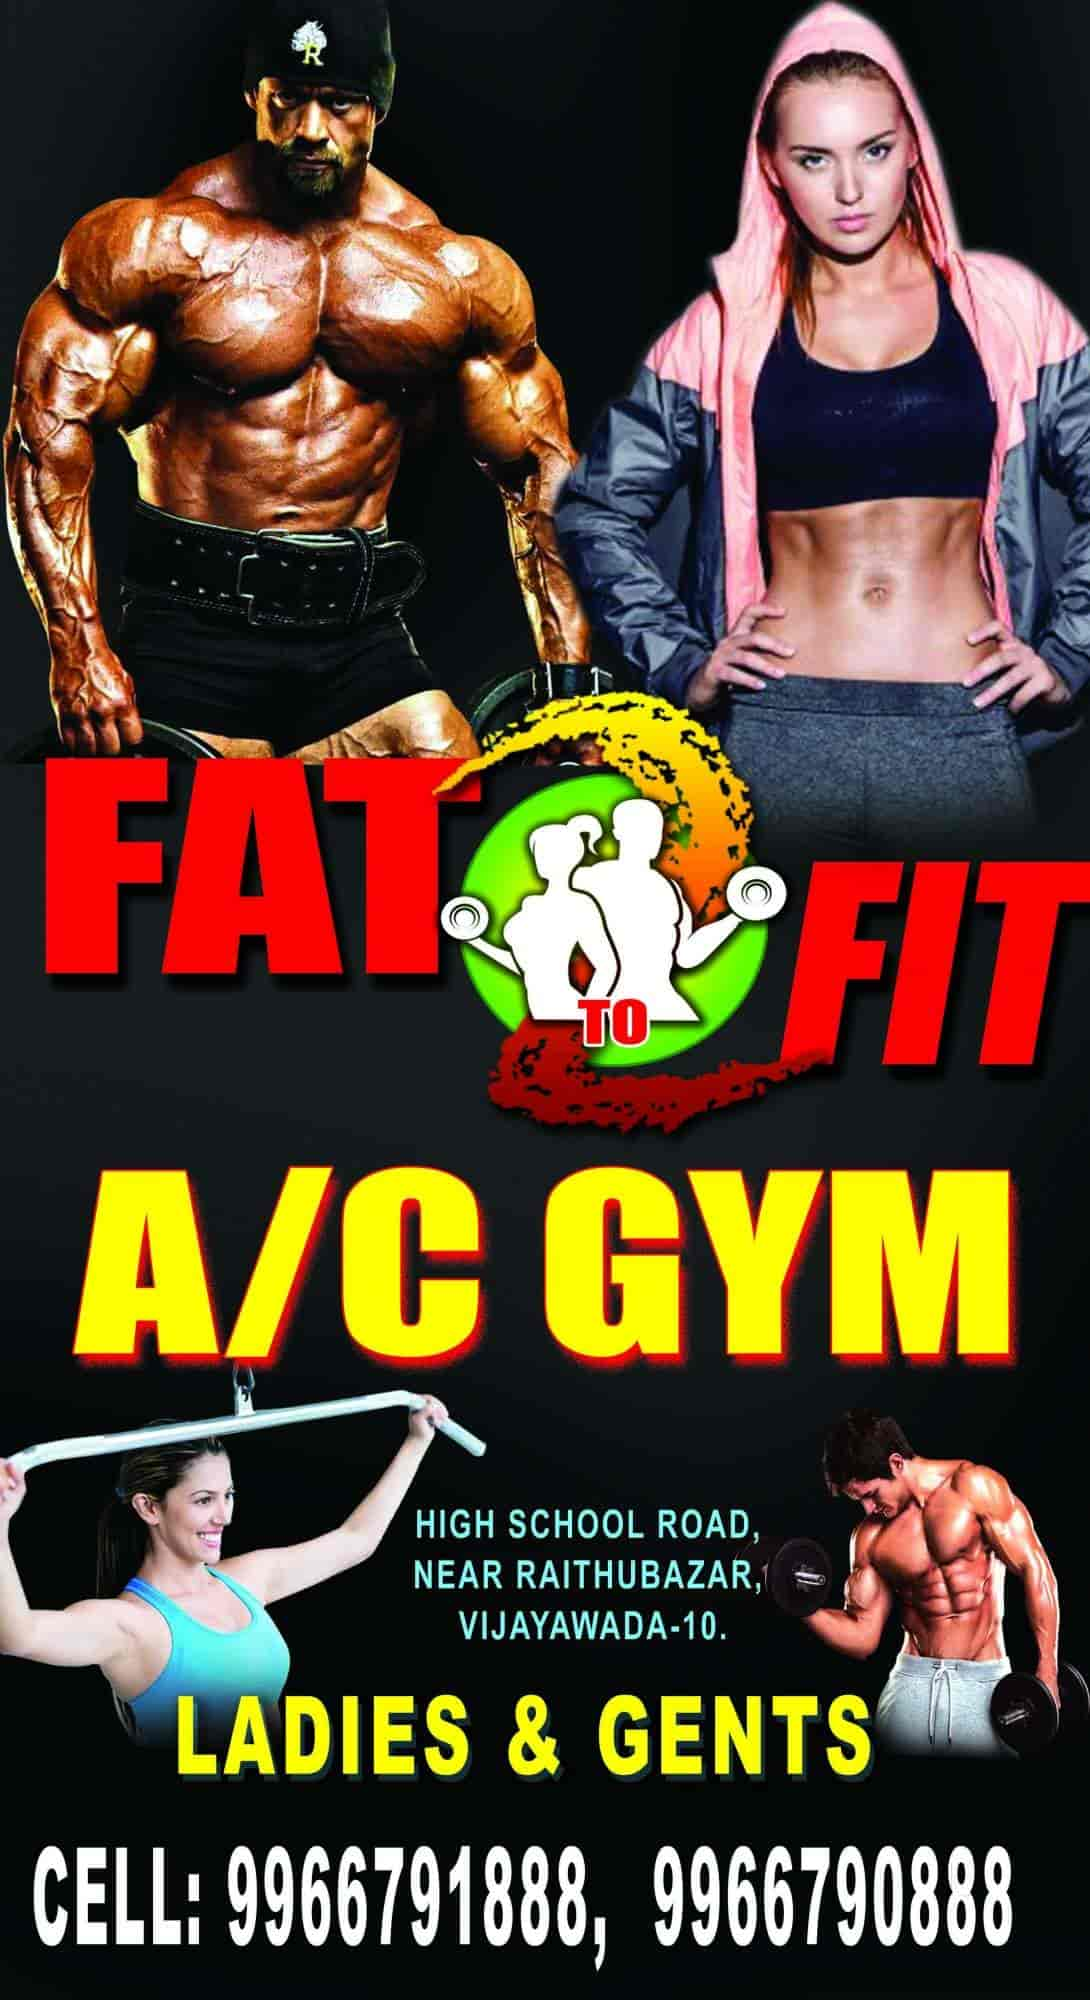 Fat To Fit Gym, Patamata - Gyms in Vijayawada - Justdial